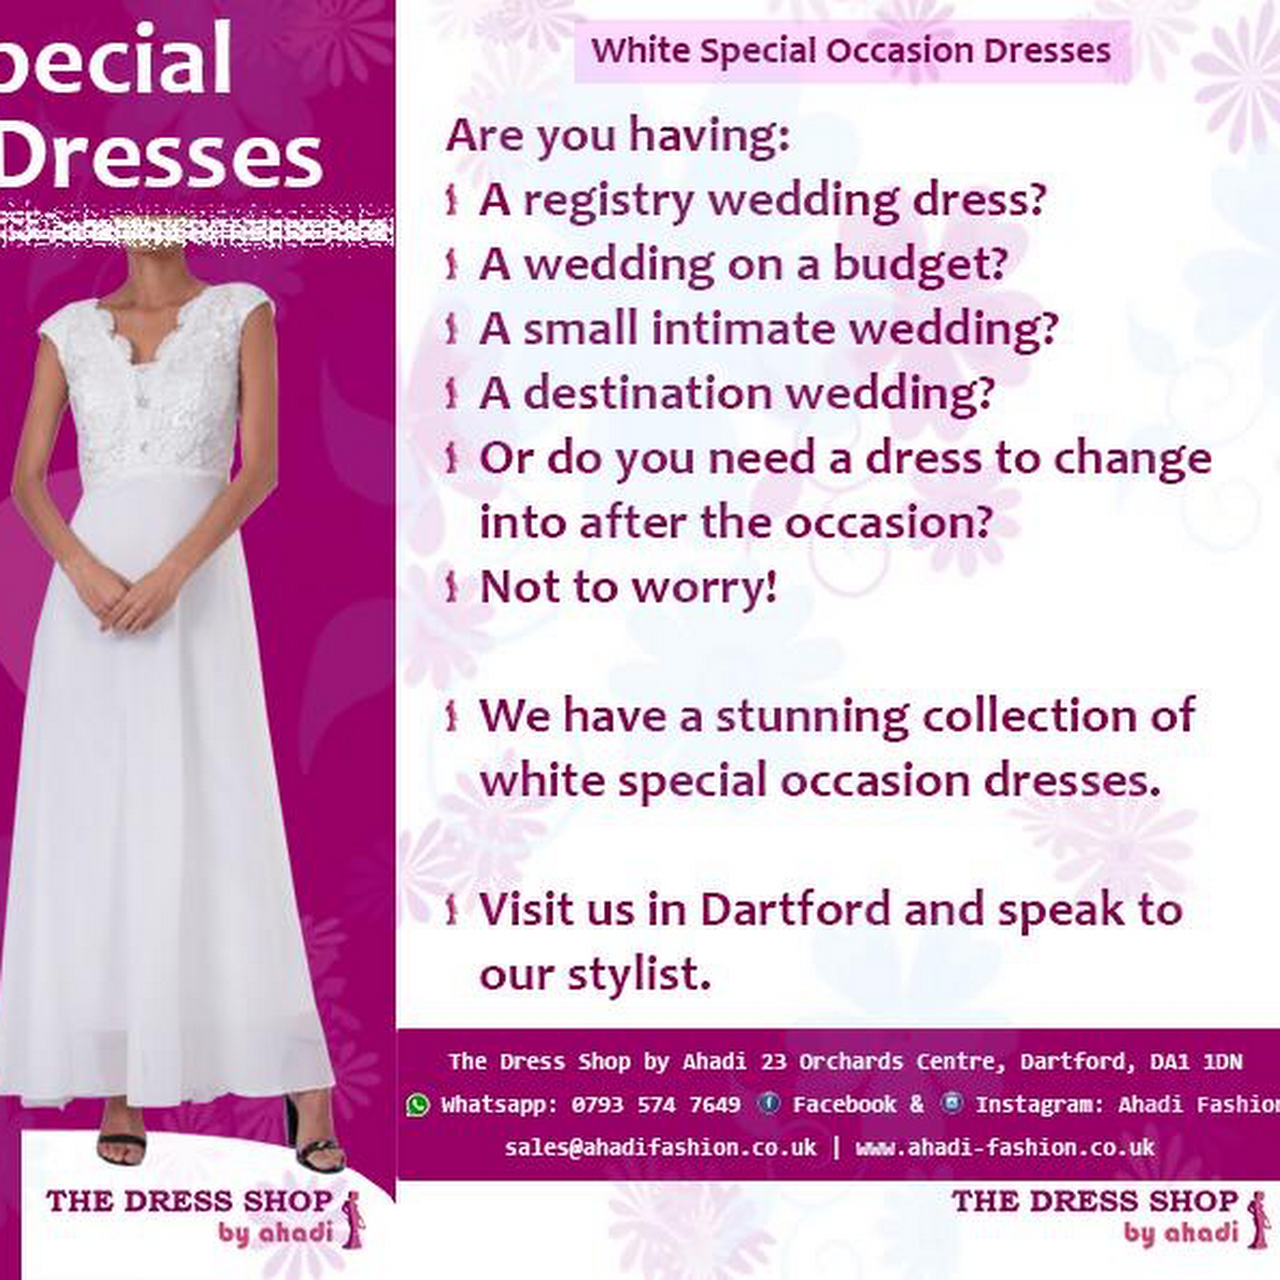 The Dress Shop By Ahadi Special Occasions Boutique,Wedding Dresses For Bridesmaids In India